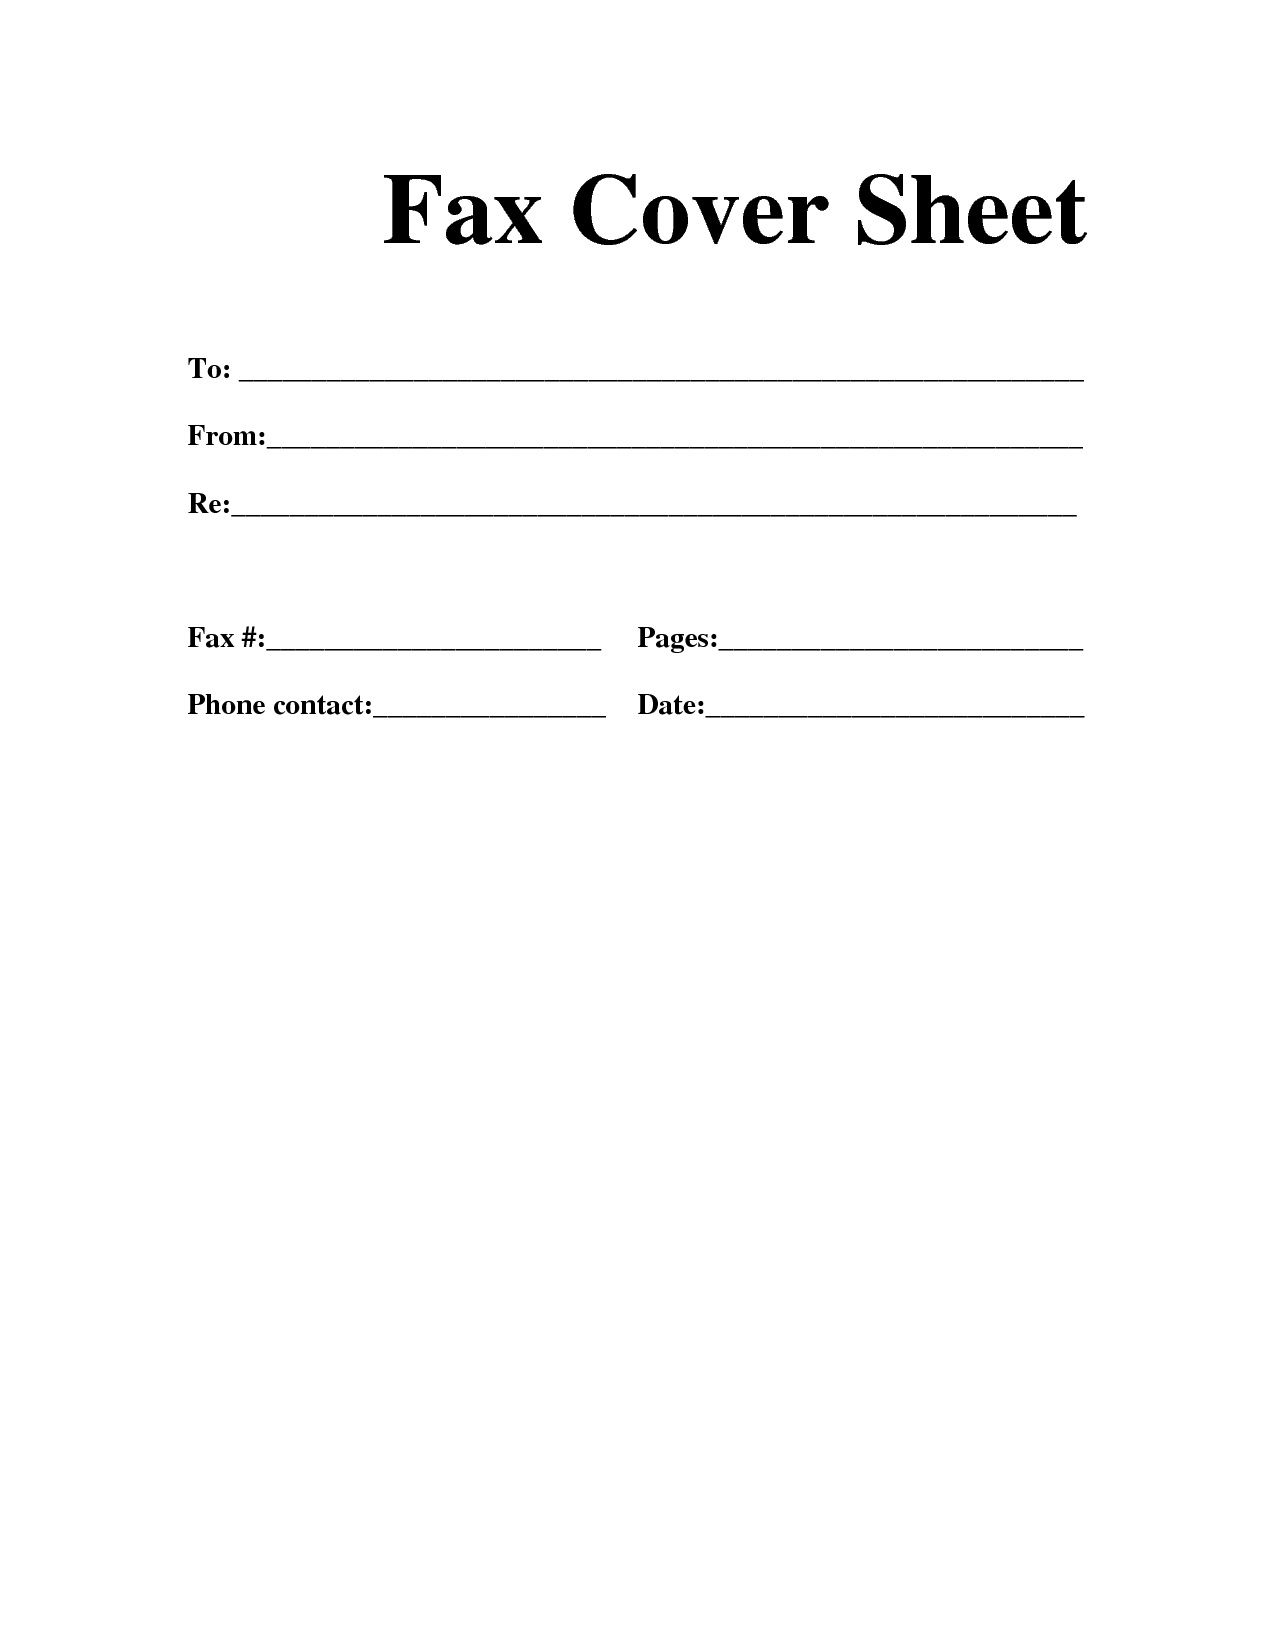 blank fax cover sheet printable pdf business letter letter fax cover sheet resume template 808 topresume info